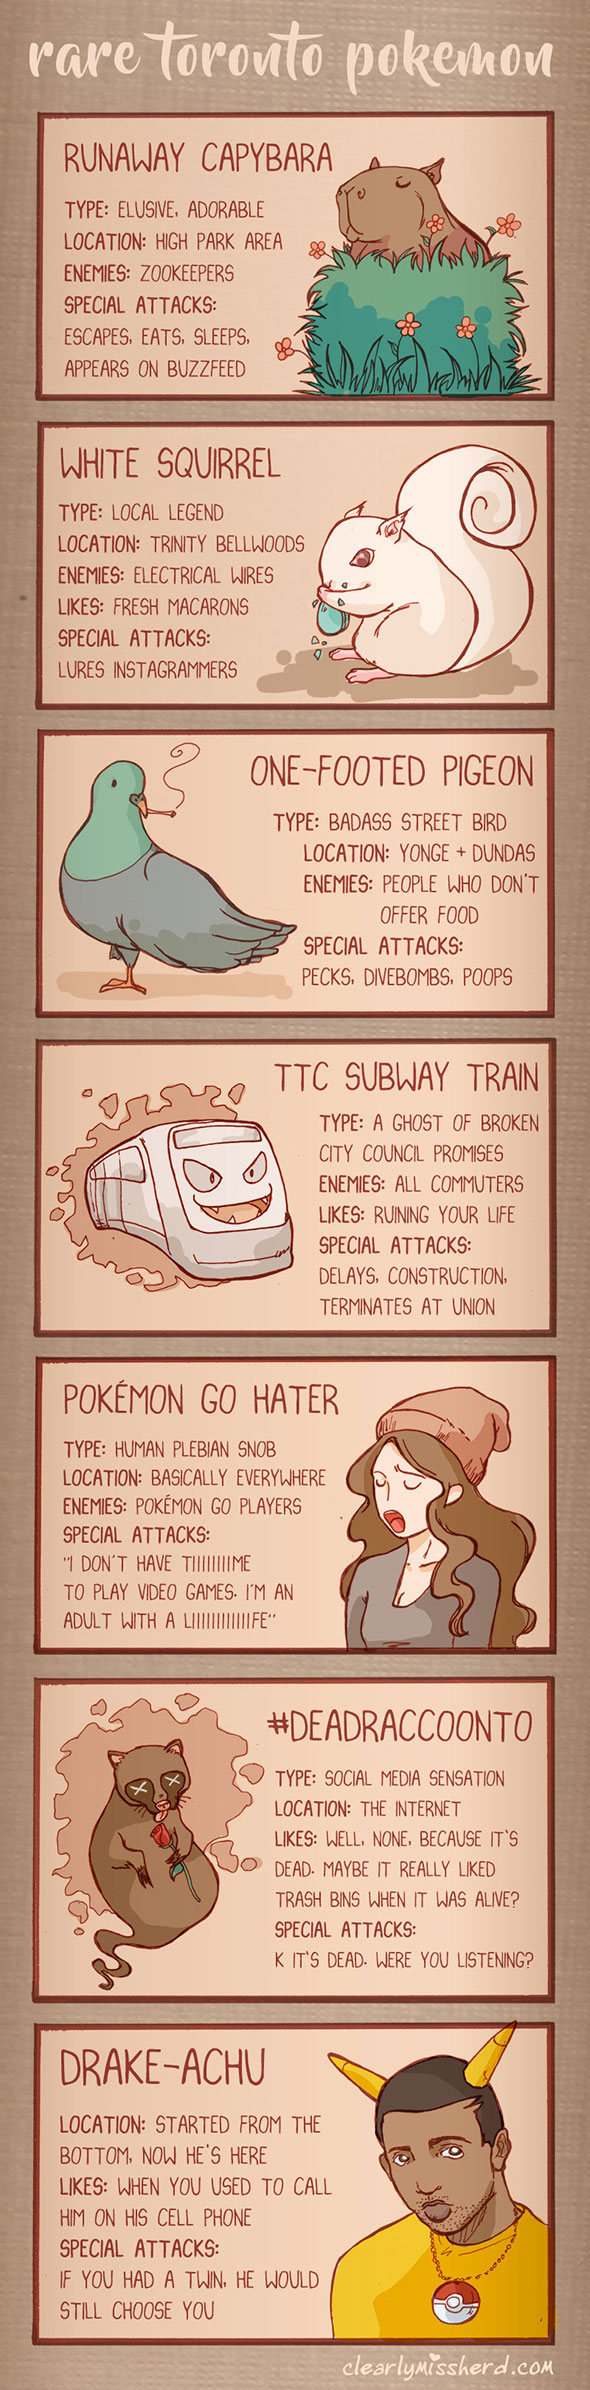 toronto pokemon